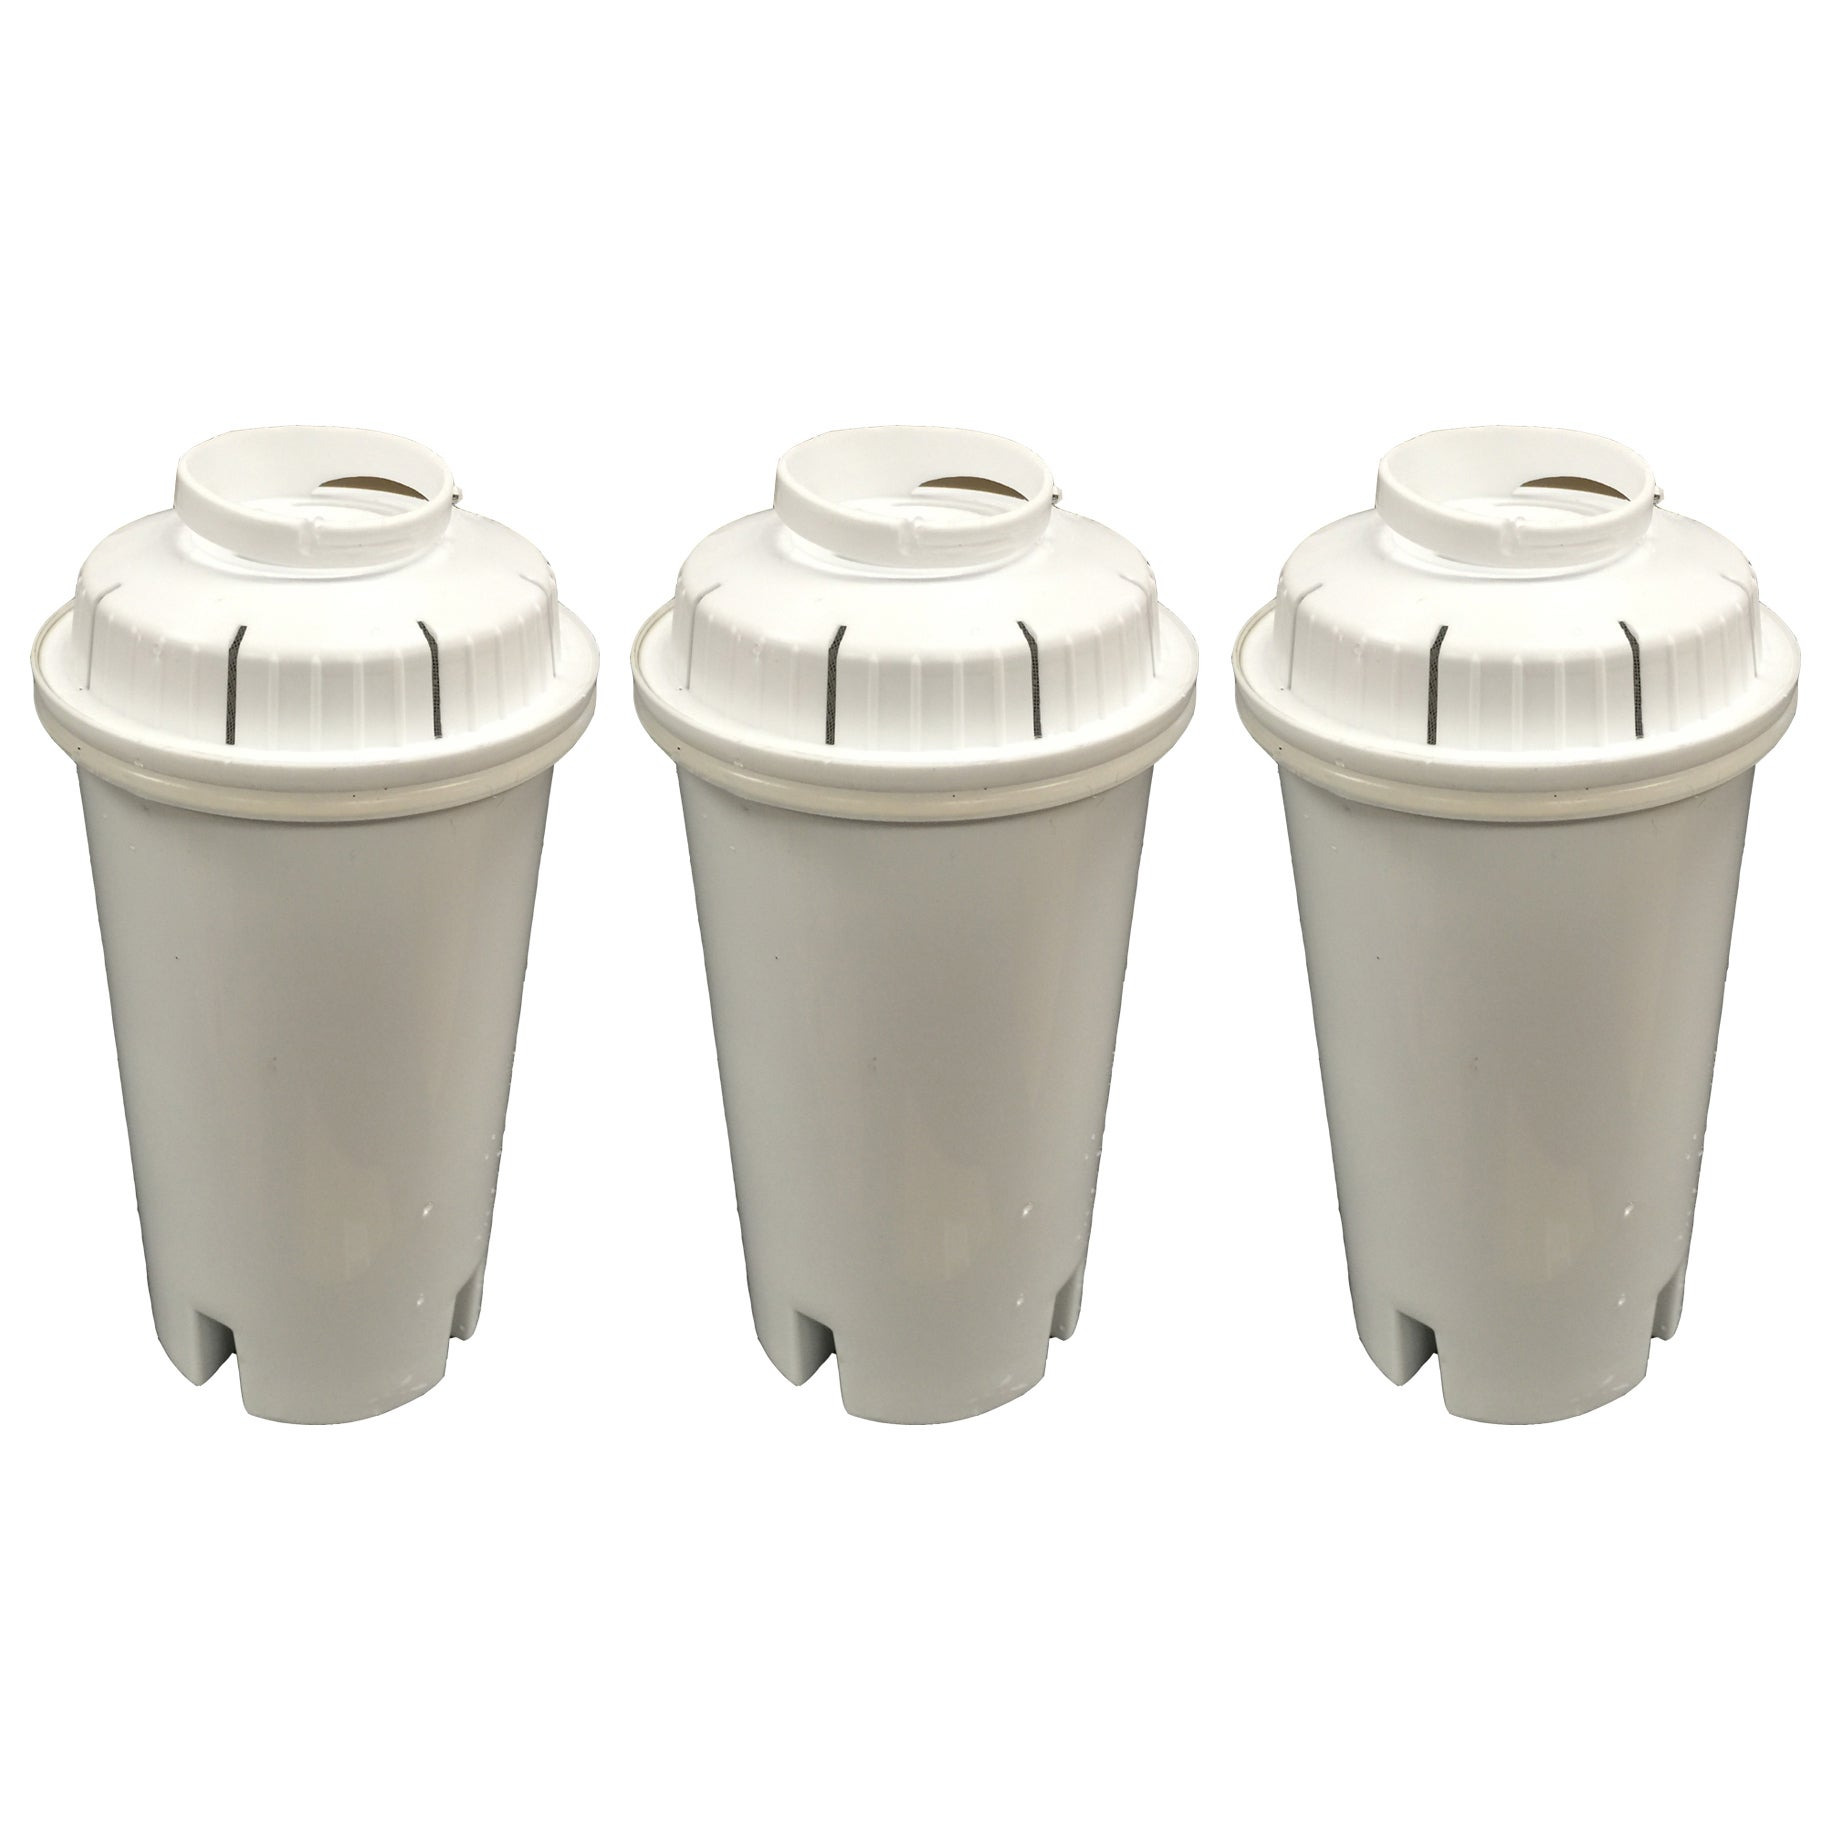 Brita water filter replacement Purifier Shop 3pk Replacement Water Filters Fist Brita Pitchers Dispensers Free Shipping On Orders Over 45 Overstockcom 11401174 Walmart Shop 3pk Replacement Water Filters Fist Brita Pitchers Dispensers